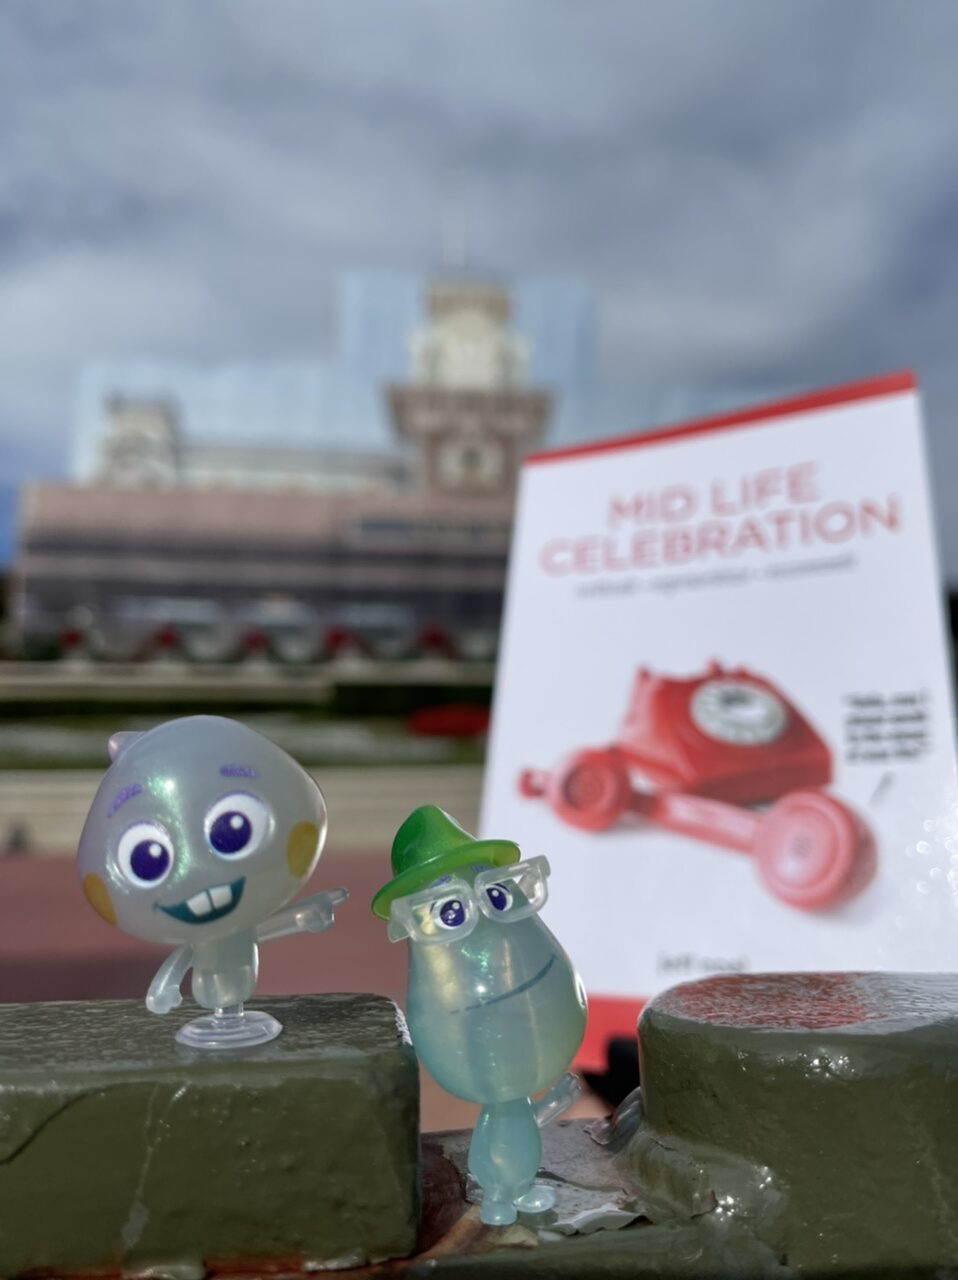 The book Mid Life Celebration with a couple of Pixar soul small toy characters